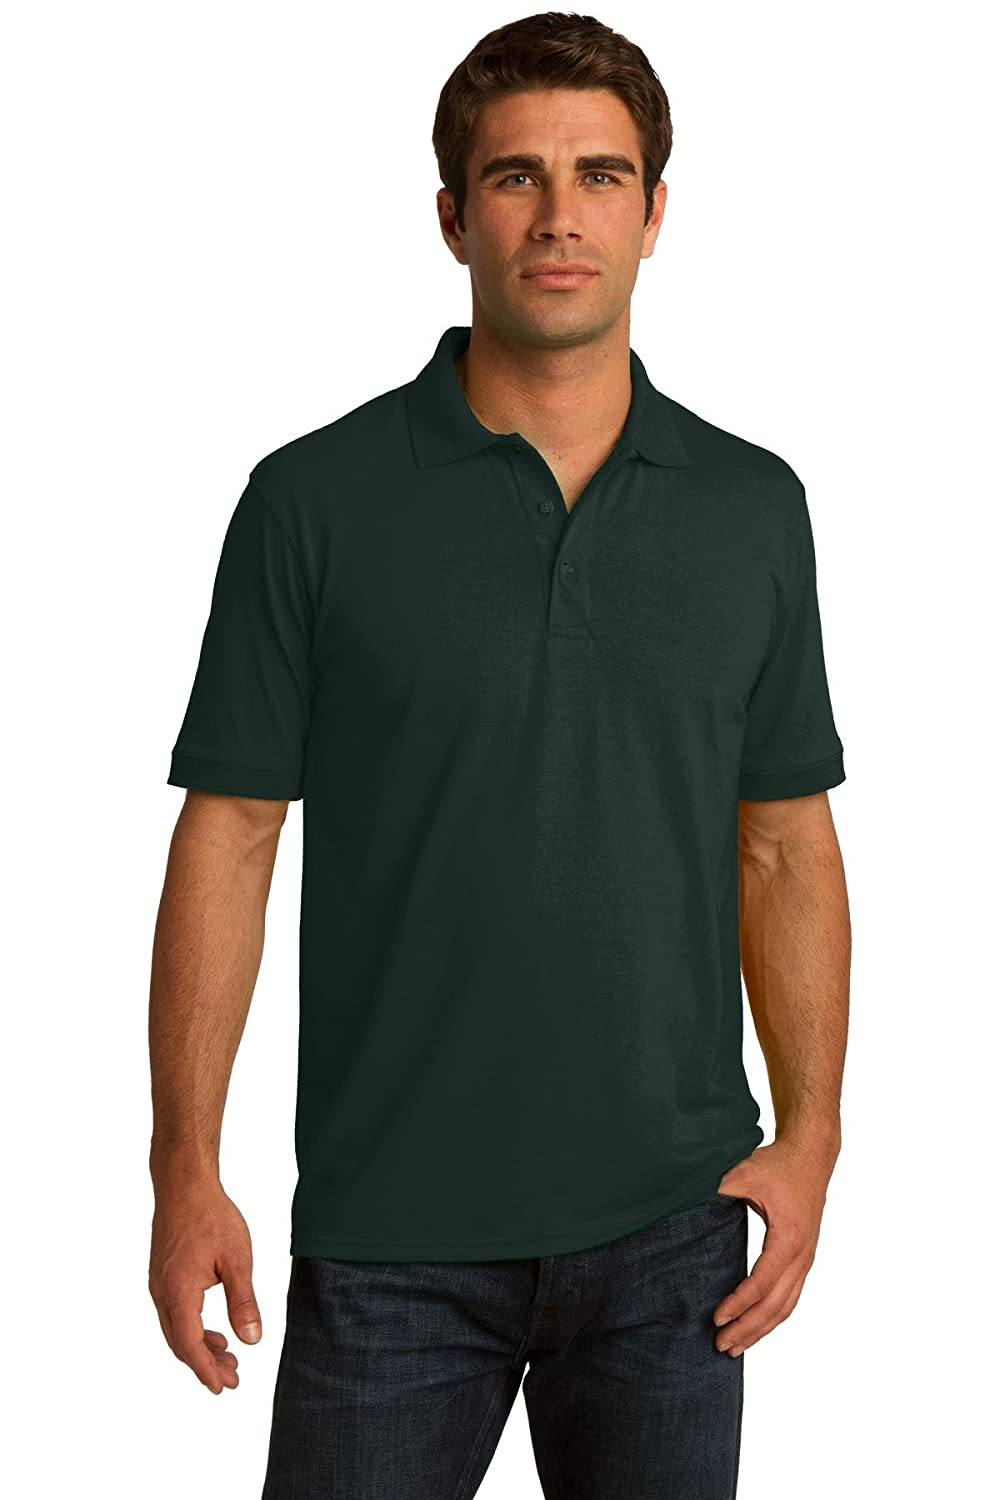 Port - Company Core Blend Jersey Knit Polo KP55